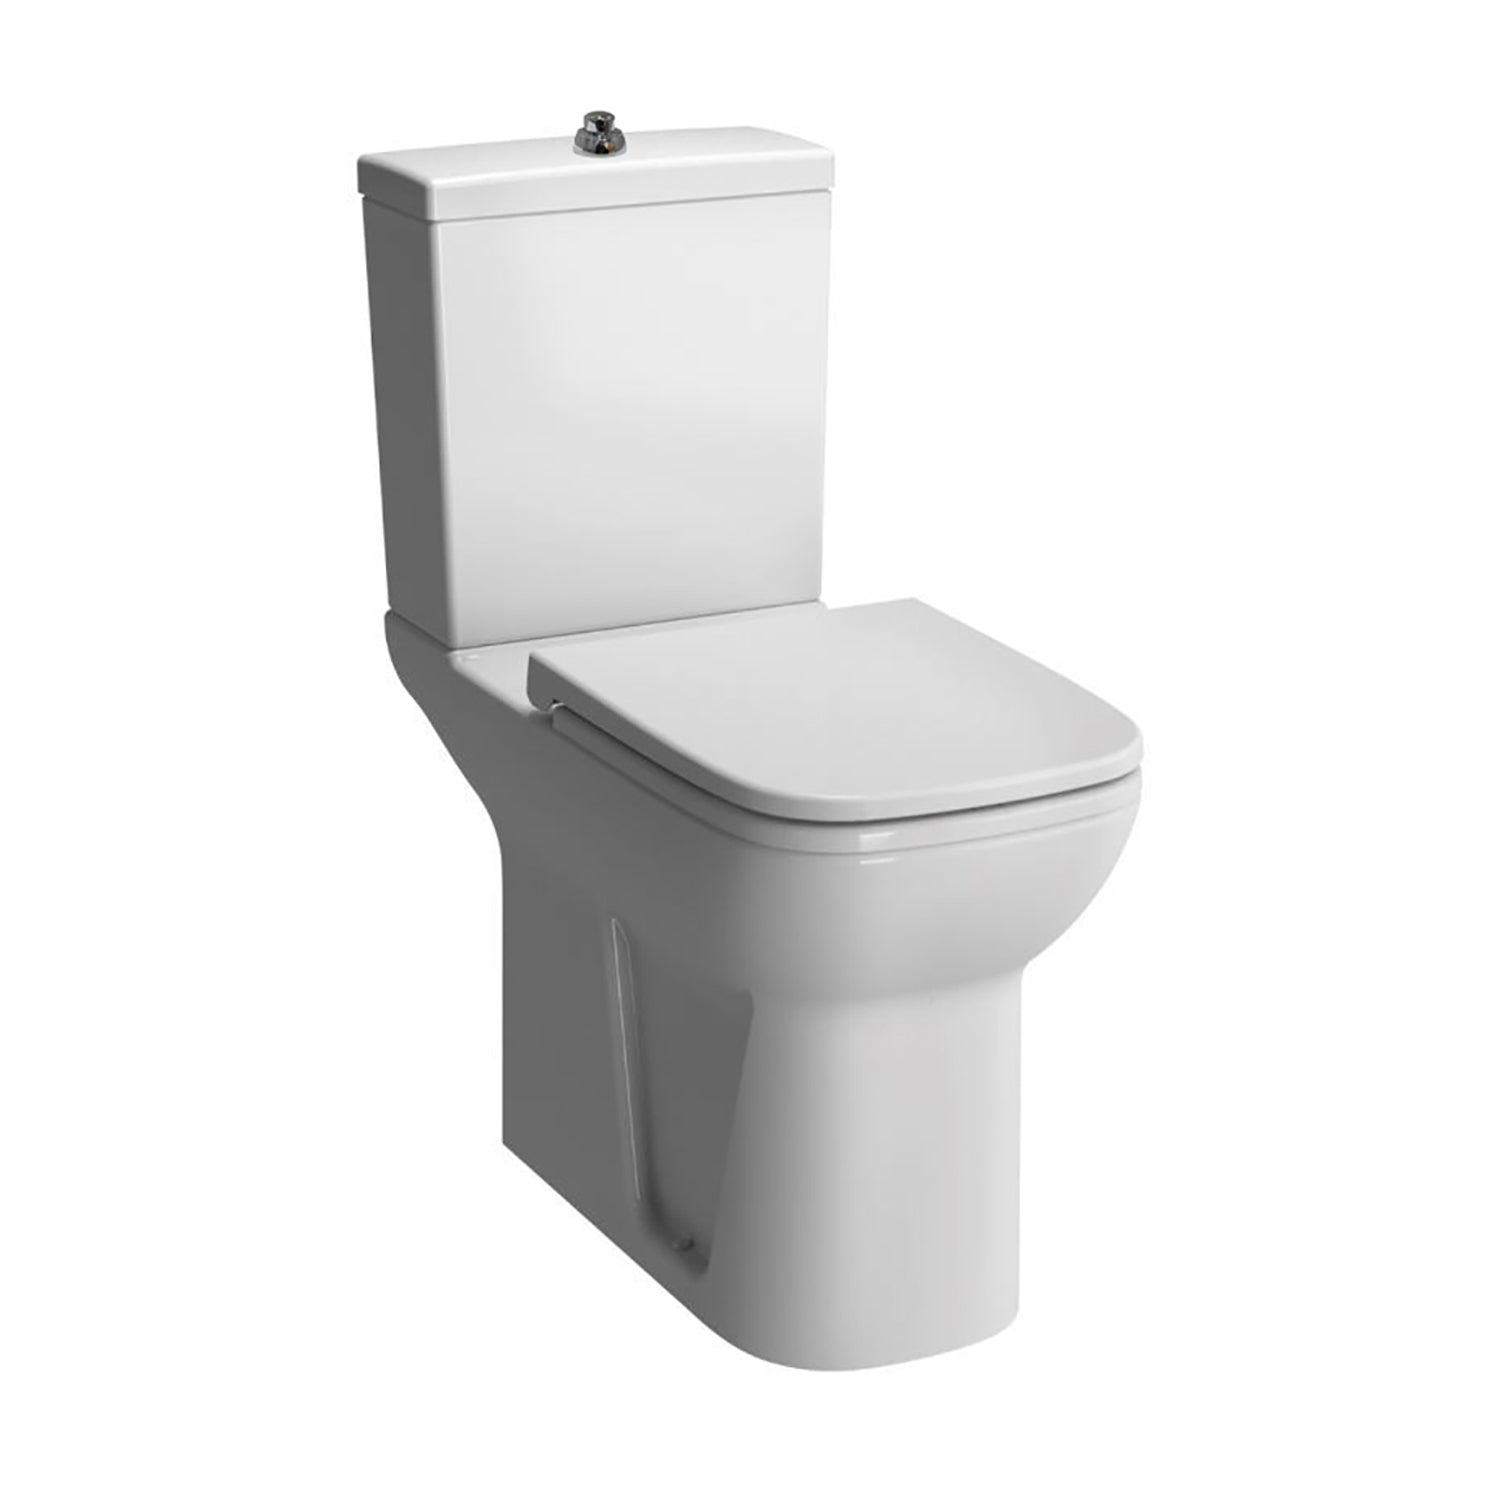 Consilio Comfort Height Close Coupled Toilet with the cistern on a white background